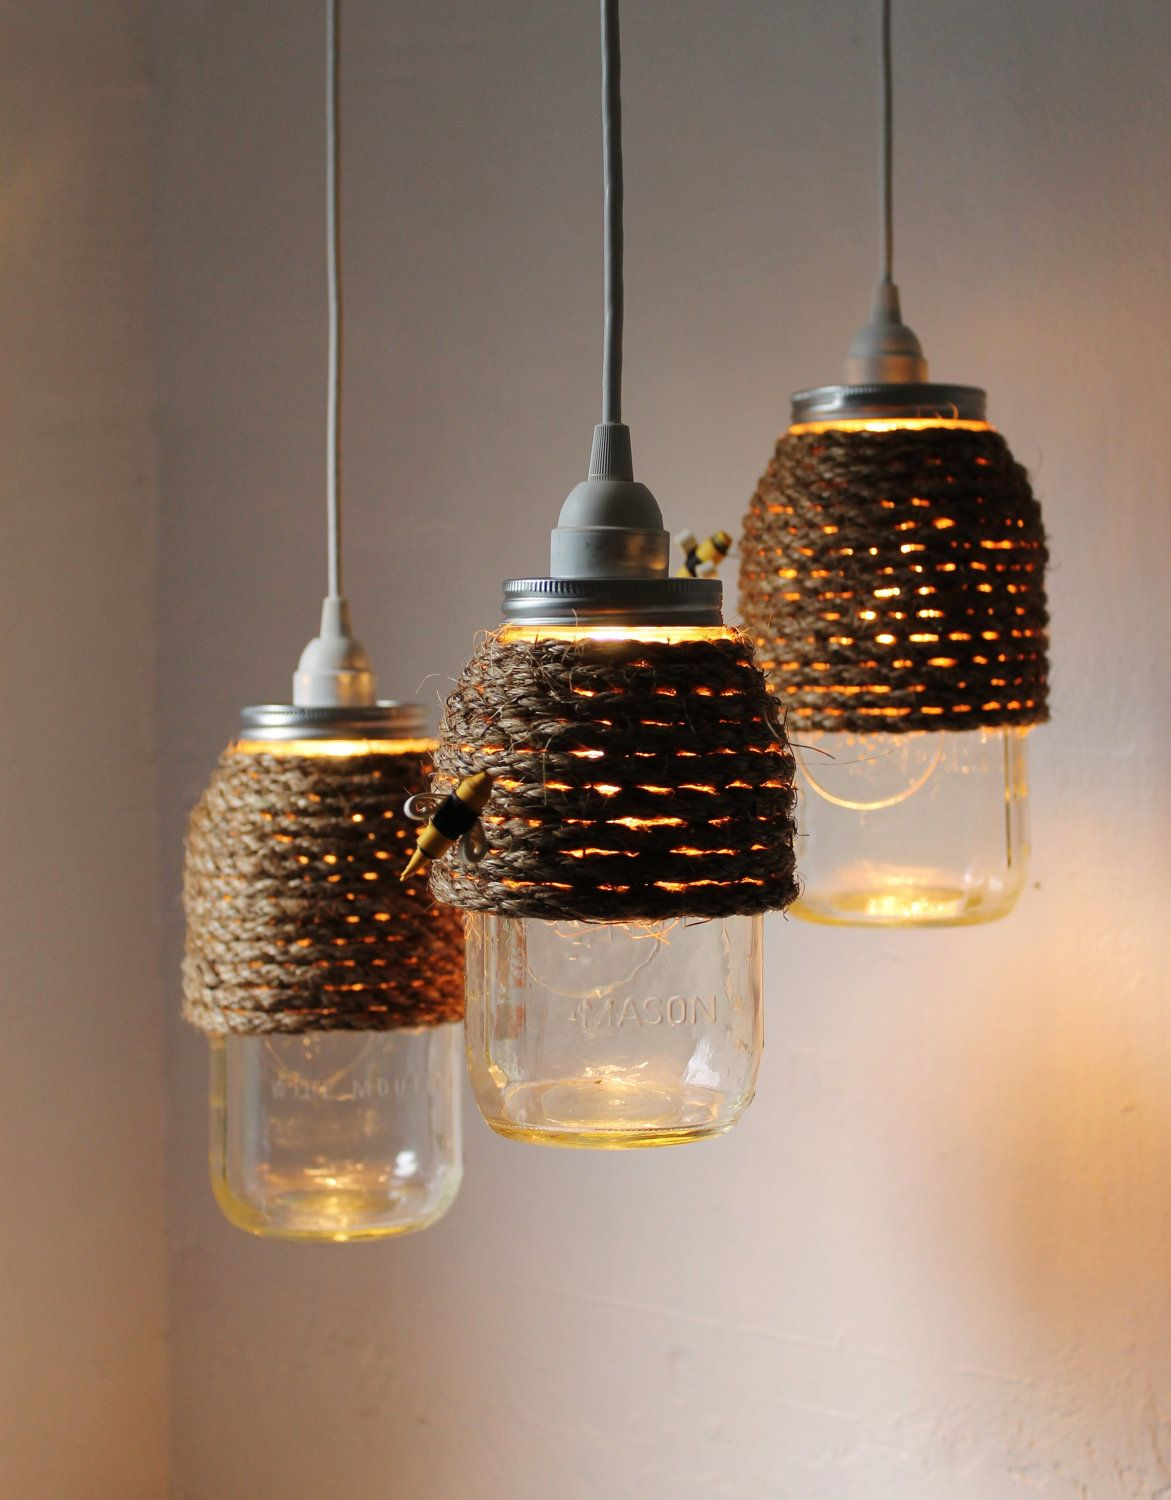 The hive set of 3 half gallon quart sized mason jar pendant dining room the hive set of 3 half gallon quart sized mason jar pendant lights upcycled handcrafted bootsngus lighting fixture wrapped in rope arubaitofo Choice Image